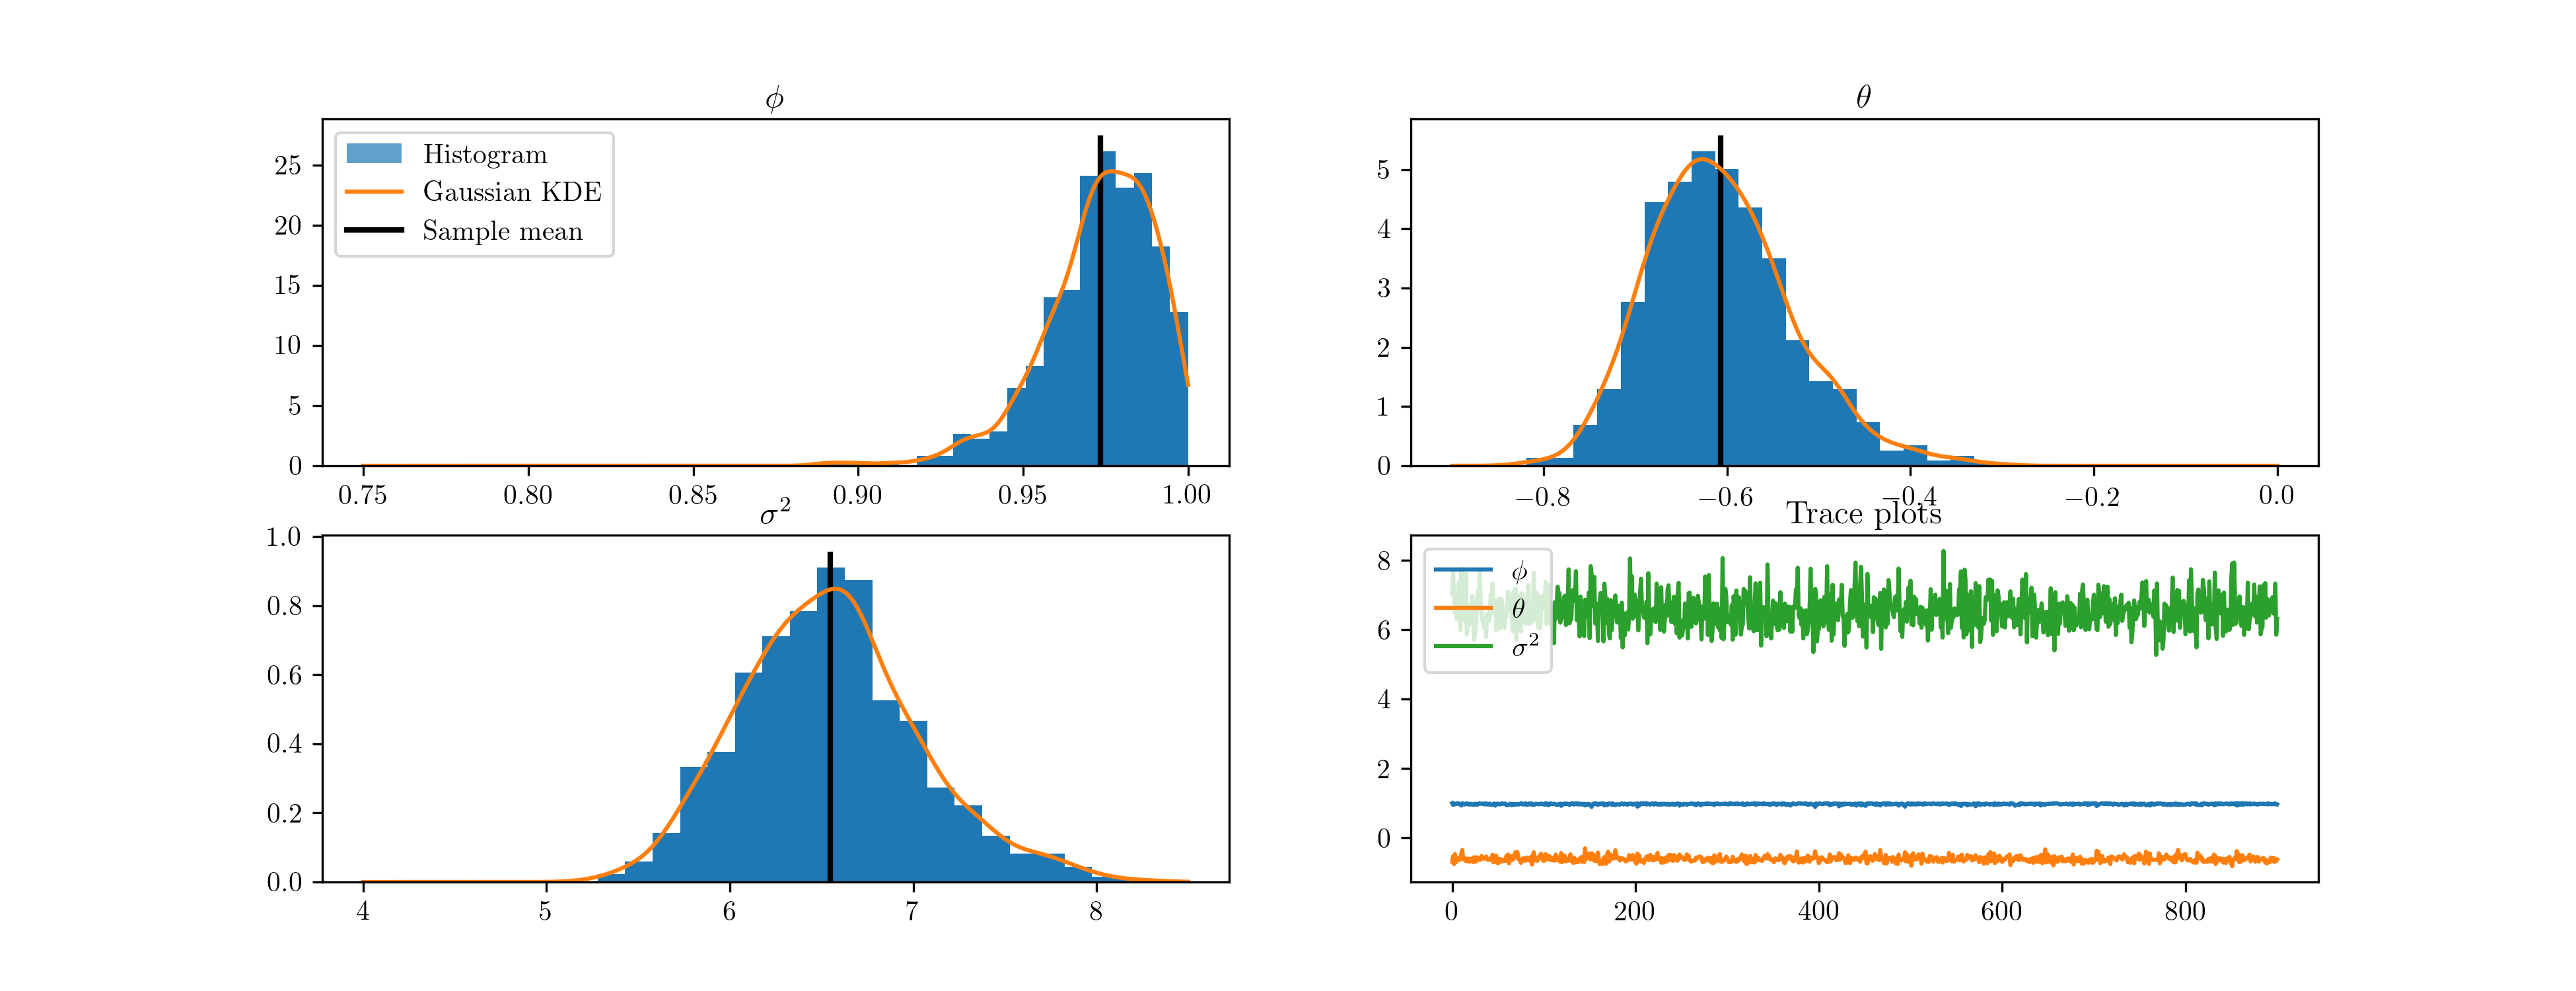 Posterior Simulation — State Space Estimation of Time Series Models